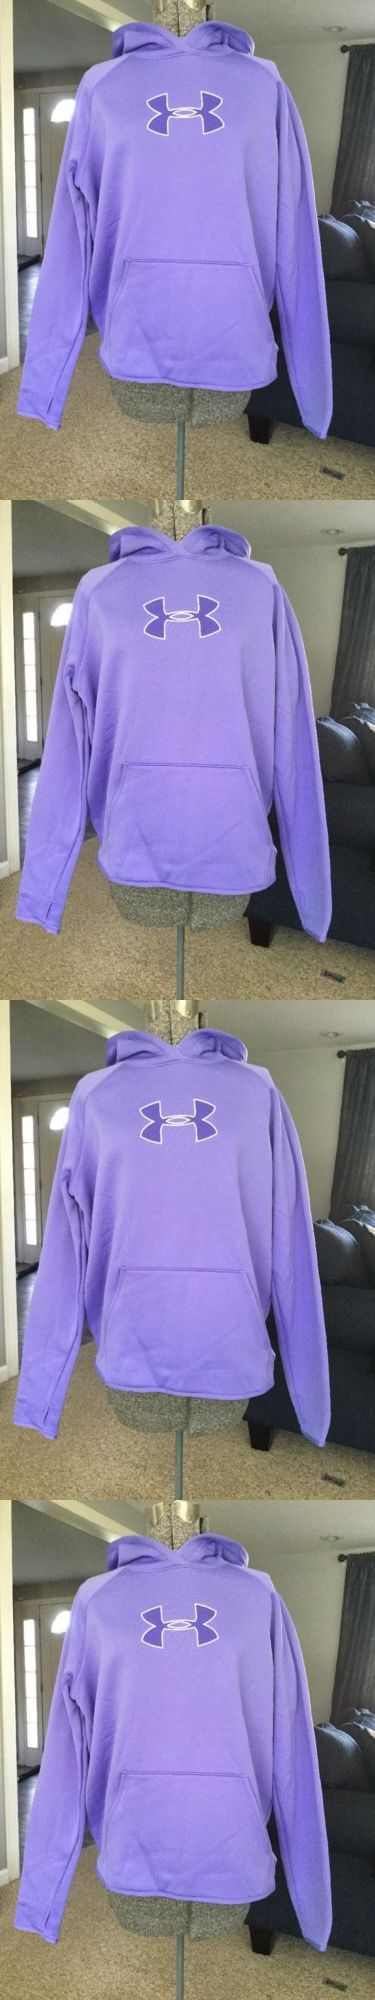 Hoodies and Sweatshirts 59325: Under Armour Purple Womens Hoodie Size L A12 -> BUY IT NOW ONLY: $39 on eBay!